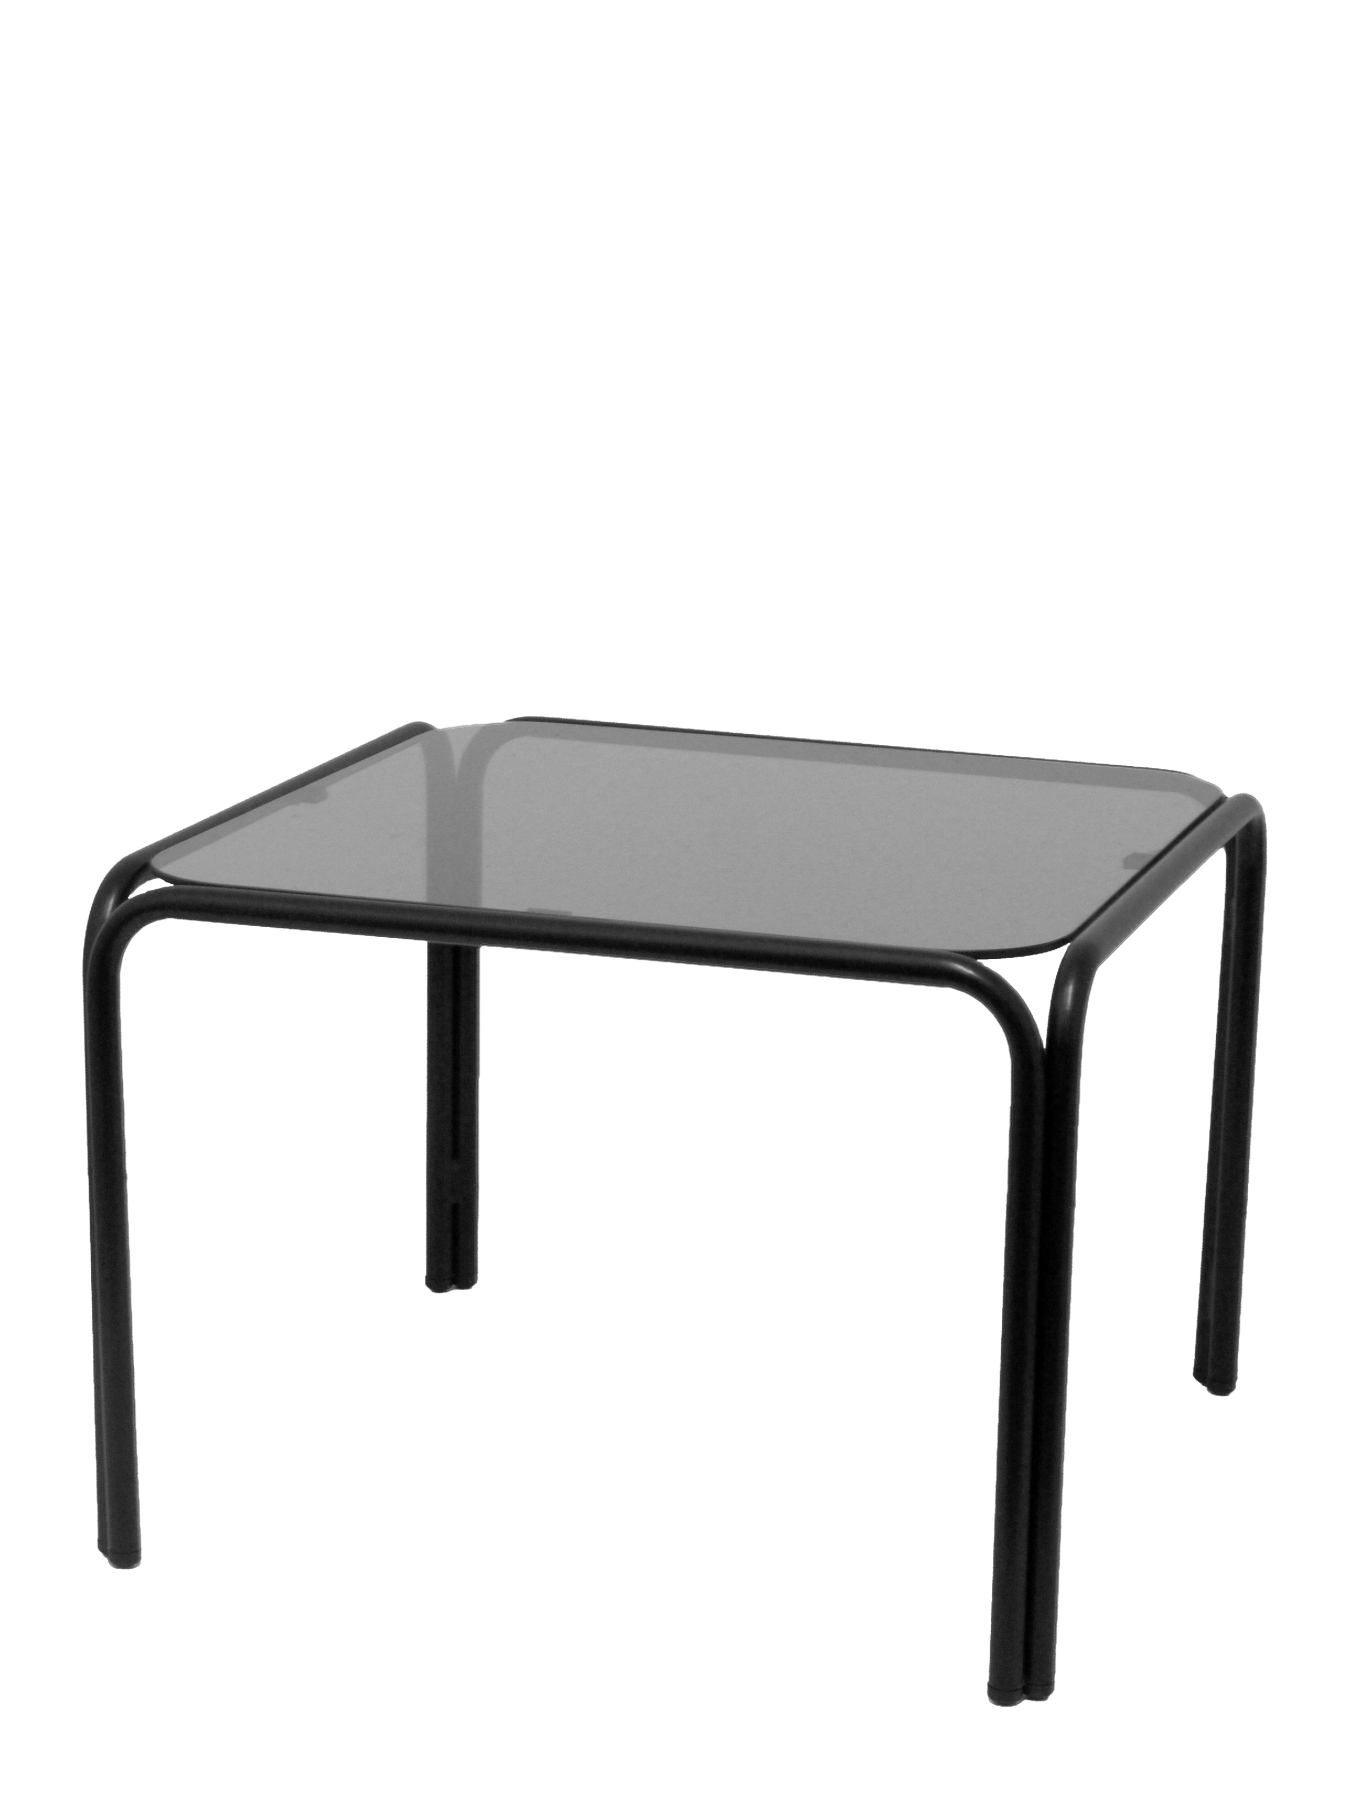 Reception Table Square Structure Black And Crystal Smoked PIQUERAS & CURLED Model Ibañez